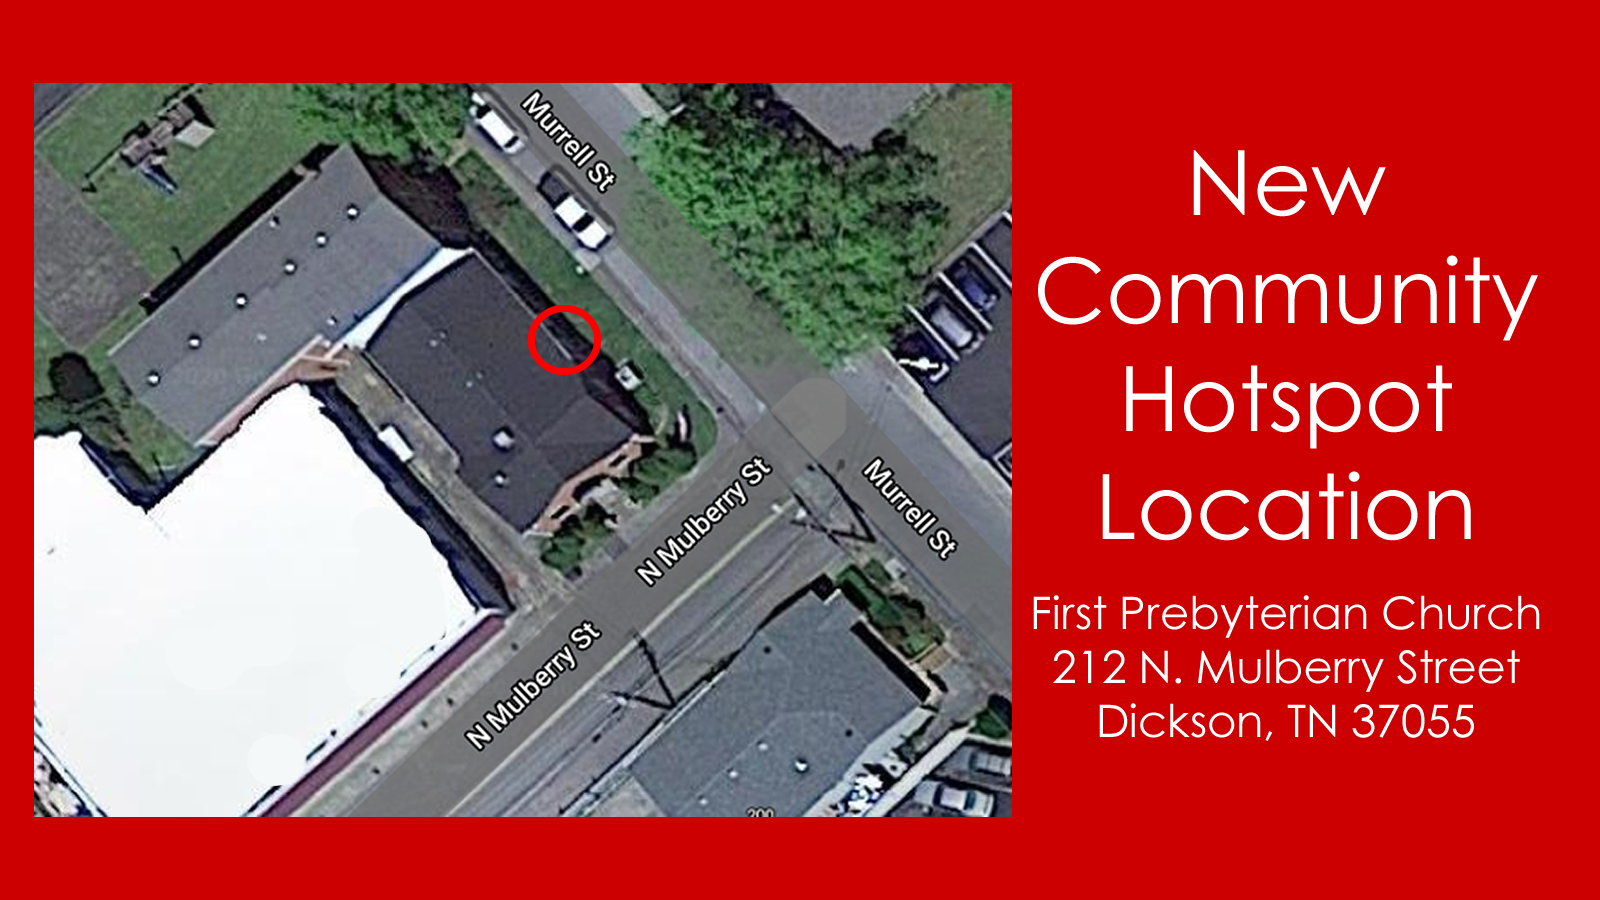 New Community Hotspot Location - First Presbyterian Church